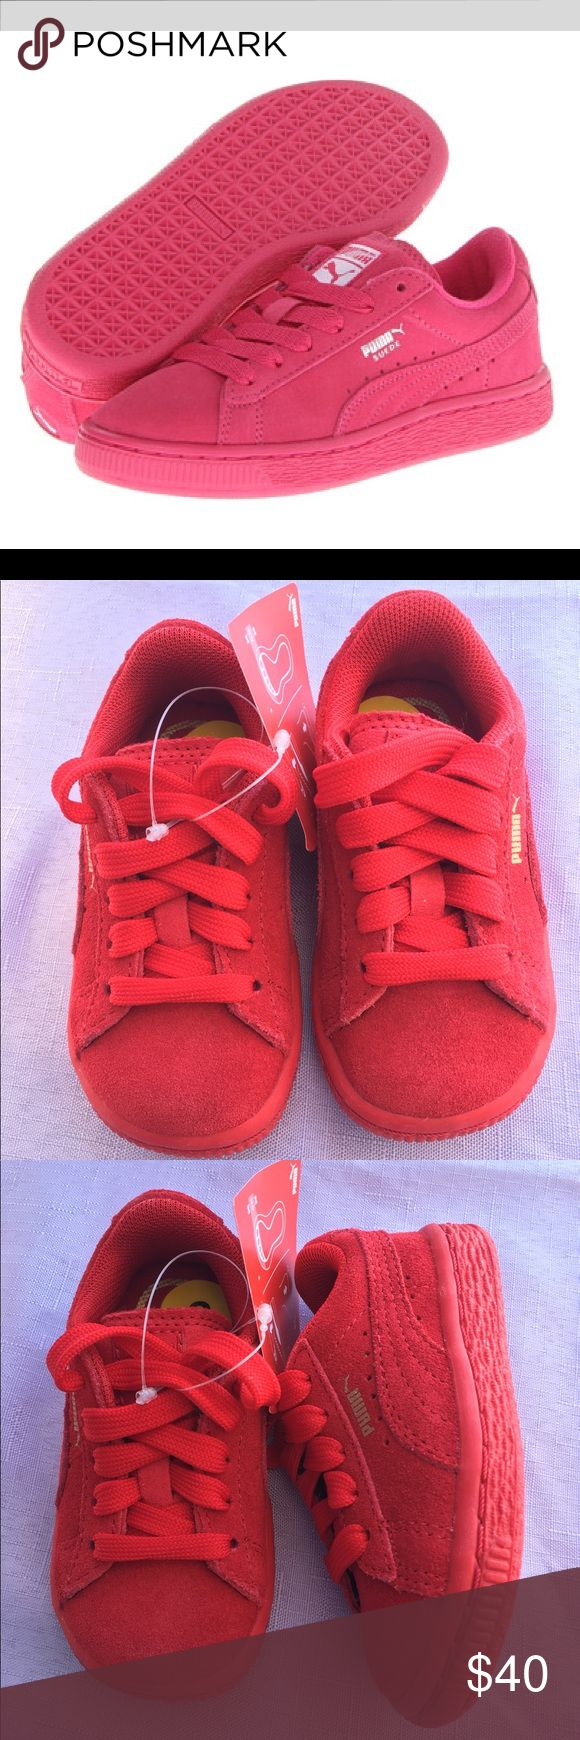 """Puma kids shoes!! Kids puma shoes, color red suede, size toddler 5 and 6, """"brand new"""" Puma Shoes Sneakers"""